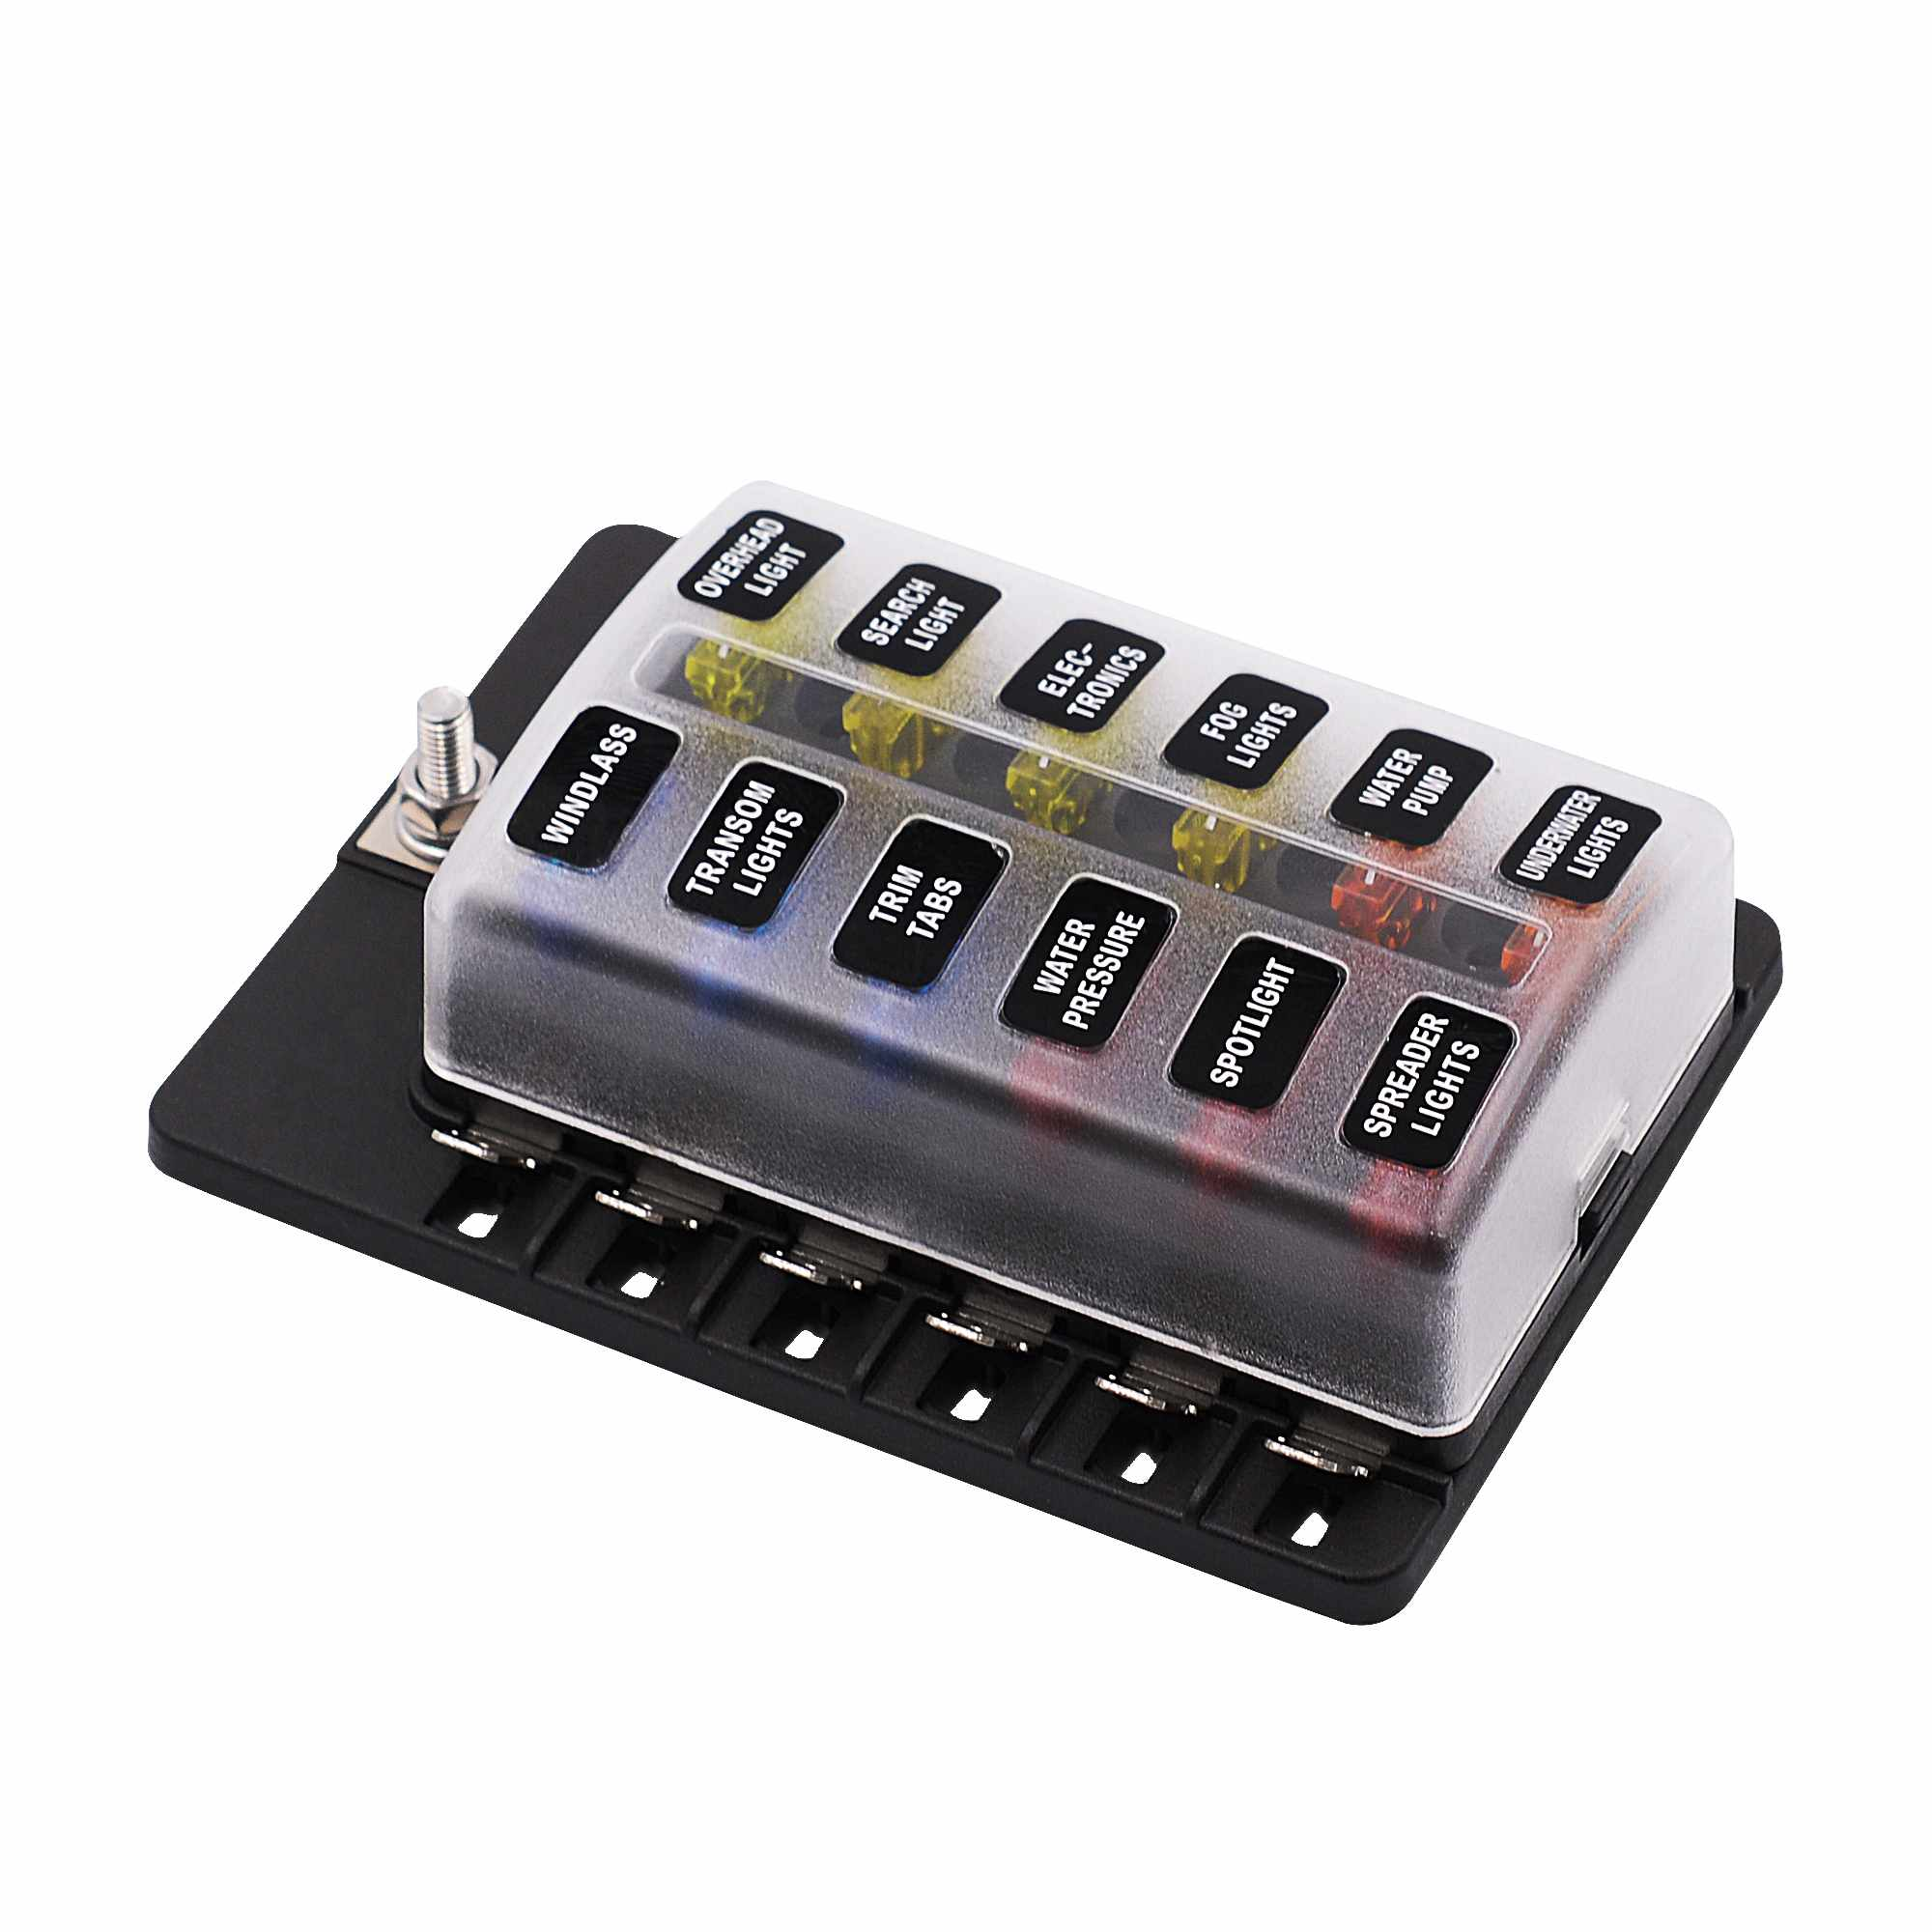 Universal Car Caravan Led 12 Way 20 12V 32V Circuit Standard Blade Fuse Box Holder universal car caravan led 12 way 20 12v 32v circuit standard blade  at panicattacktreatment.co